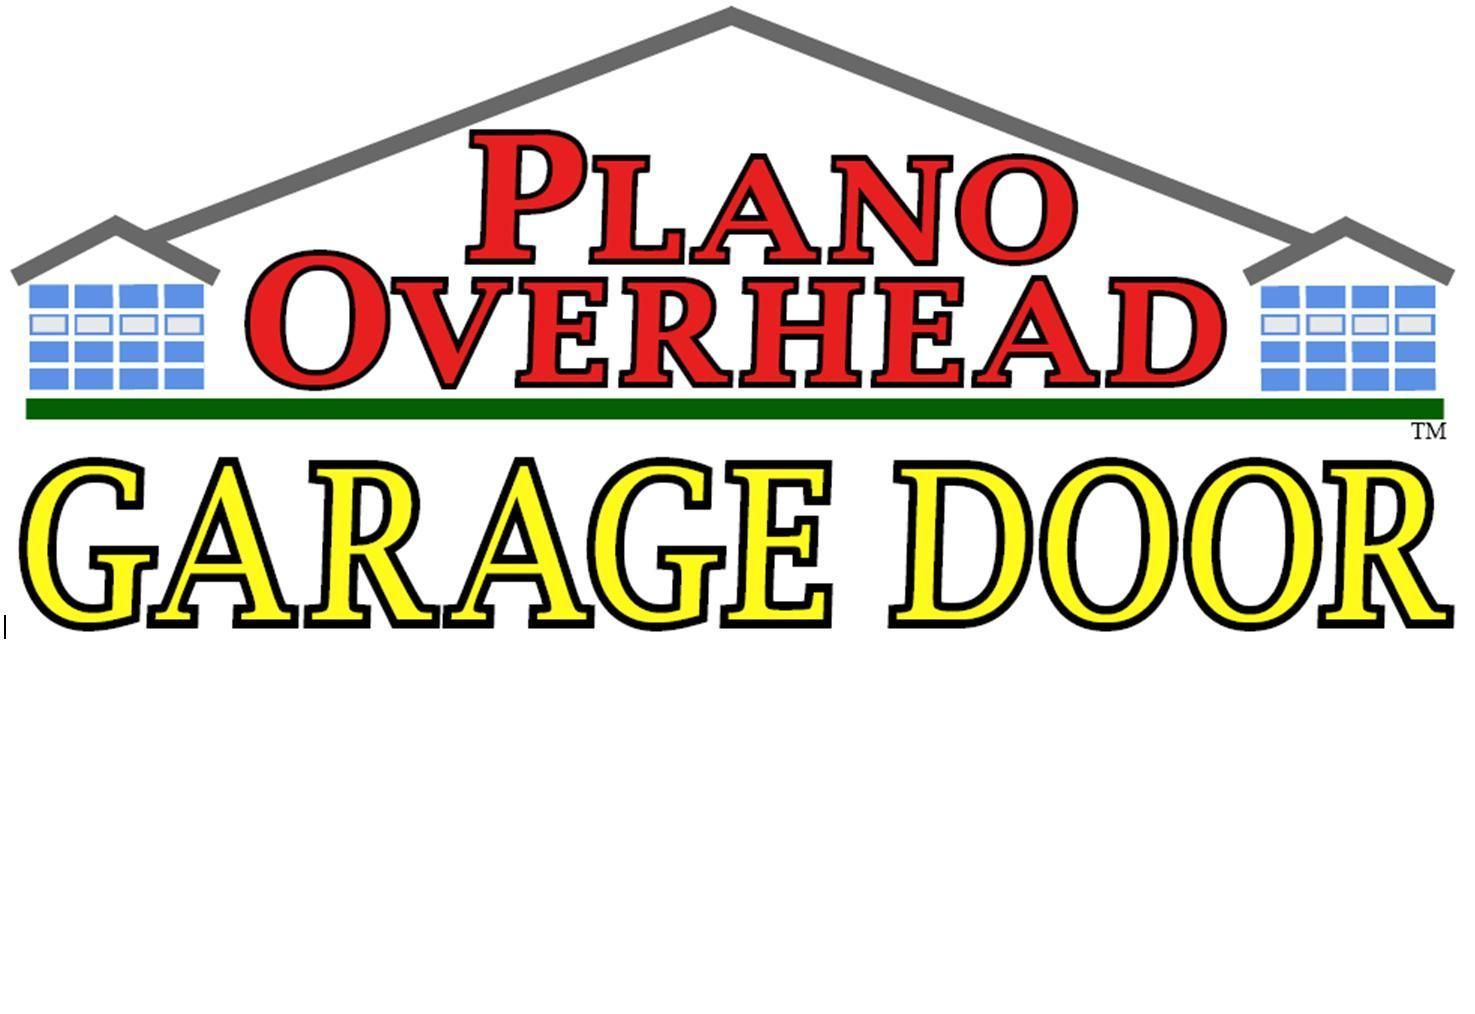 Plano Overhead Garage Door Logo With Images Garage Doors